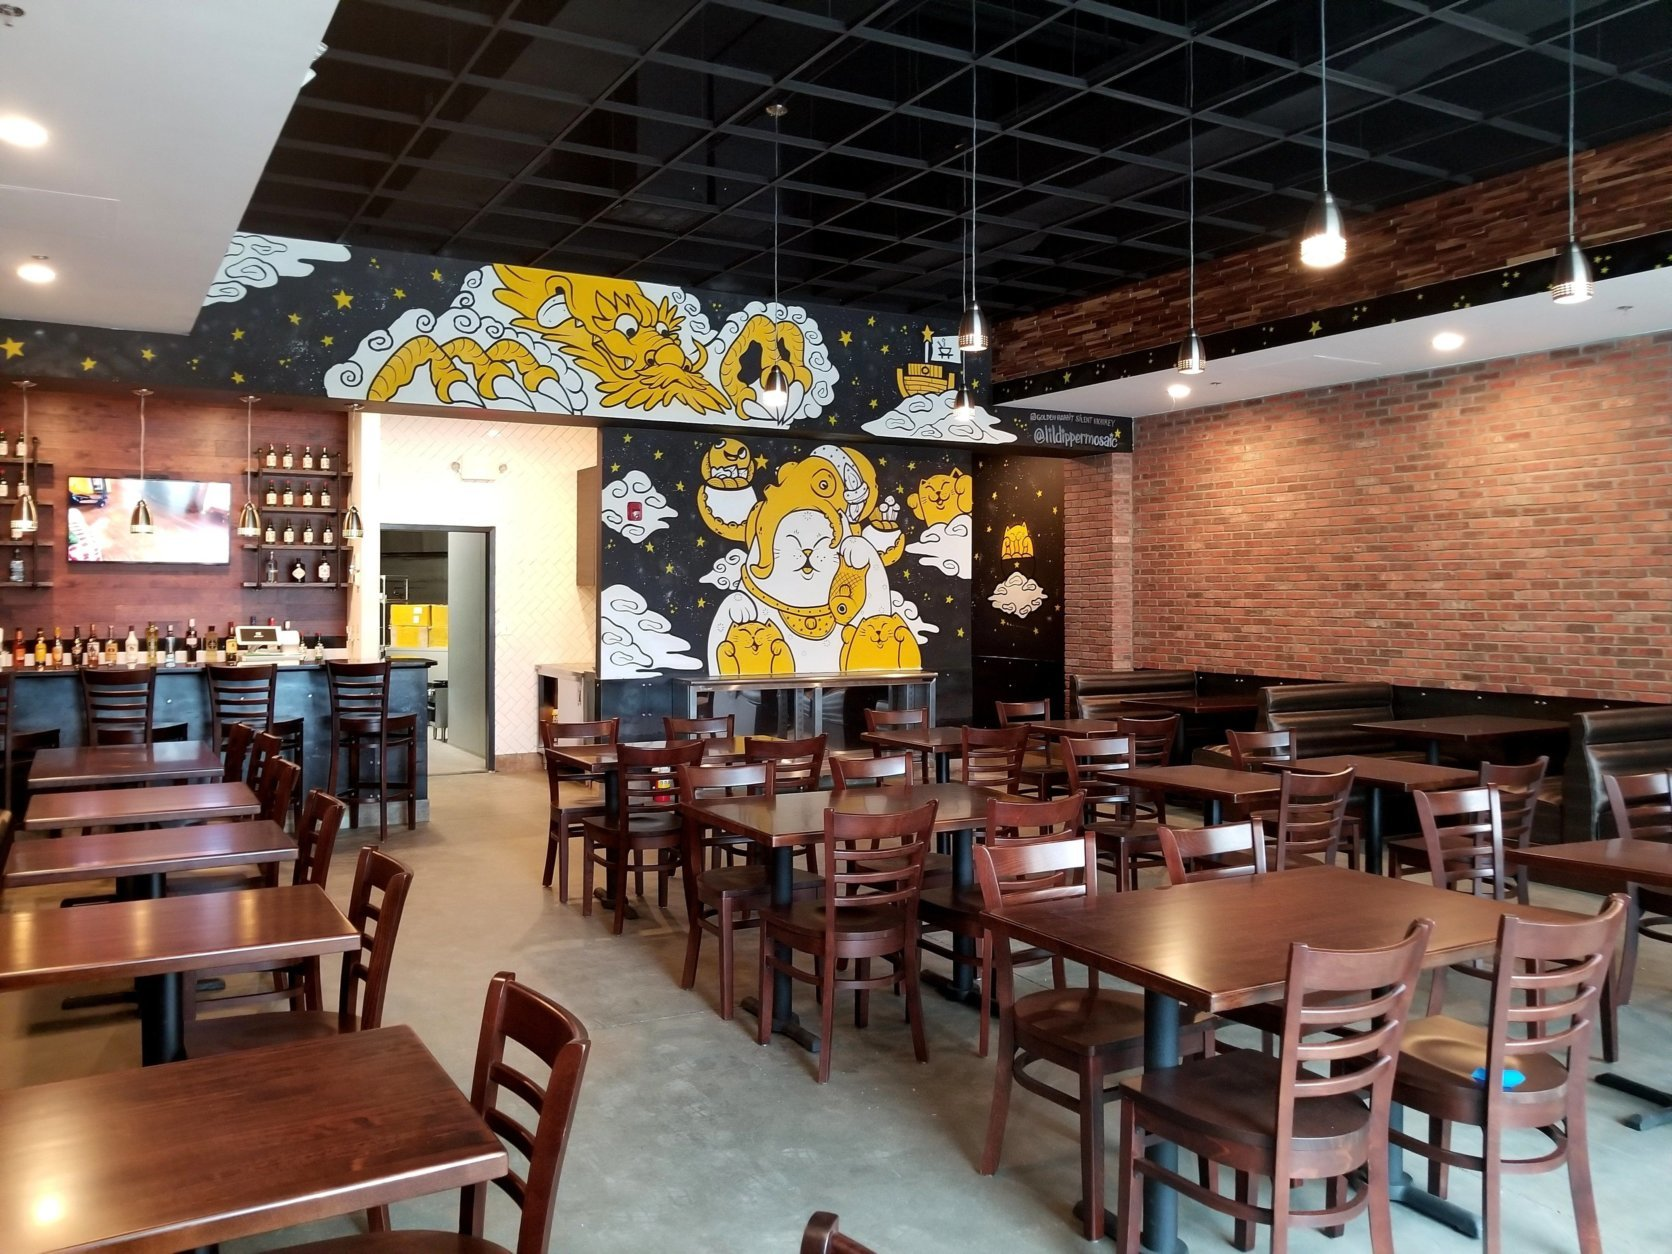 Little Dipper Hot Pot House will open its newest restaurant Nov. 19 in Fairfax's Mosaic District.